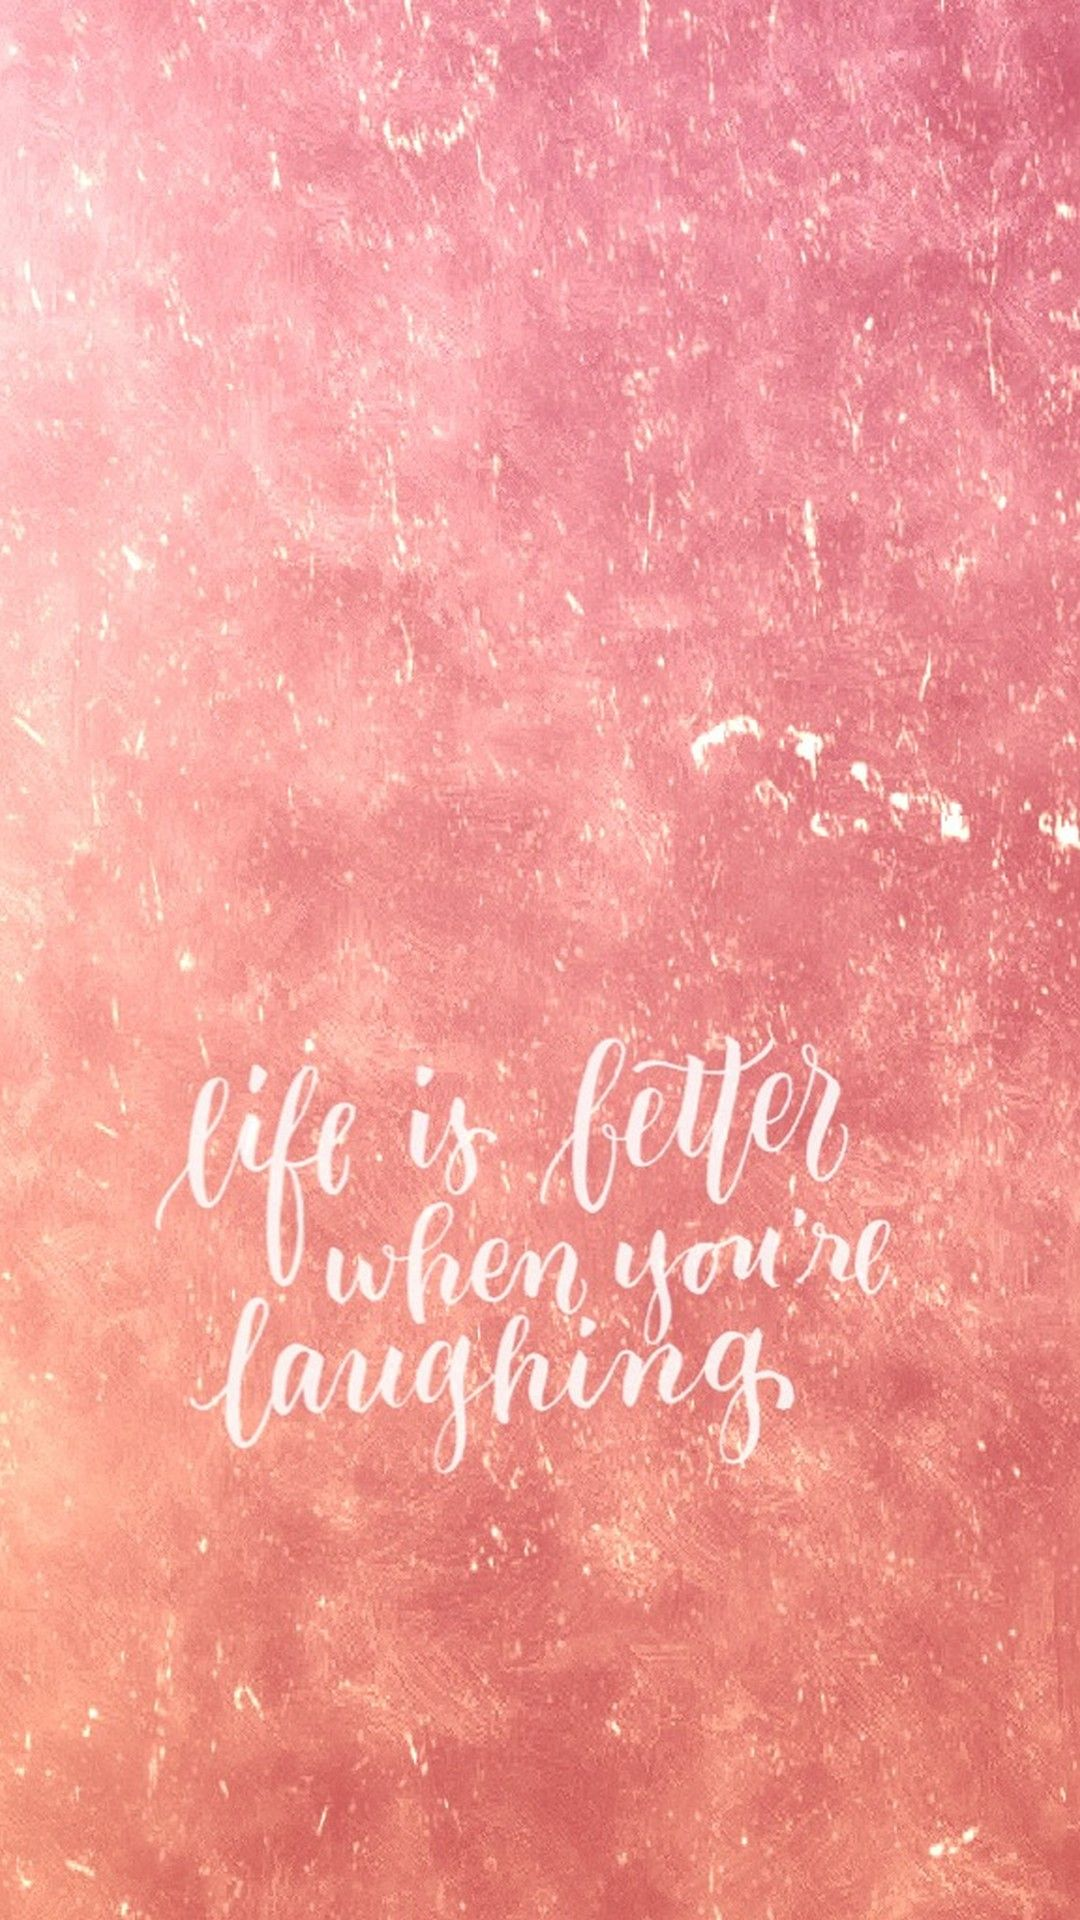 Awesome 8 Rose Gold Cute Wallpapers Hd For Your Android Or Iphone Wallpapers Android Iphone W Rose Gold Quotes Rose Gold Wallpaper Rose Gold Quote Wallpaper